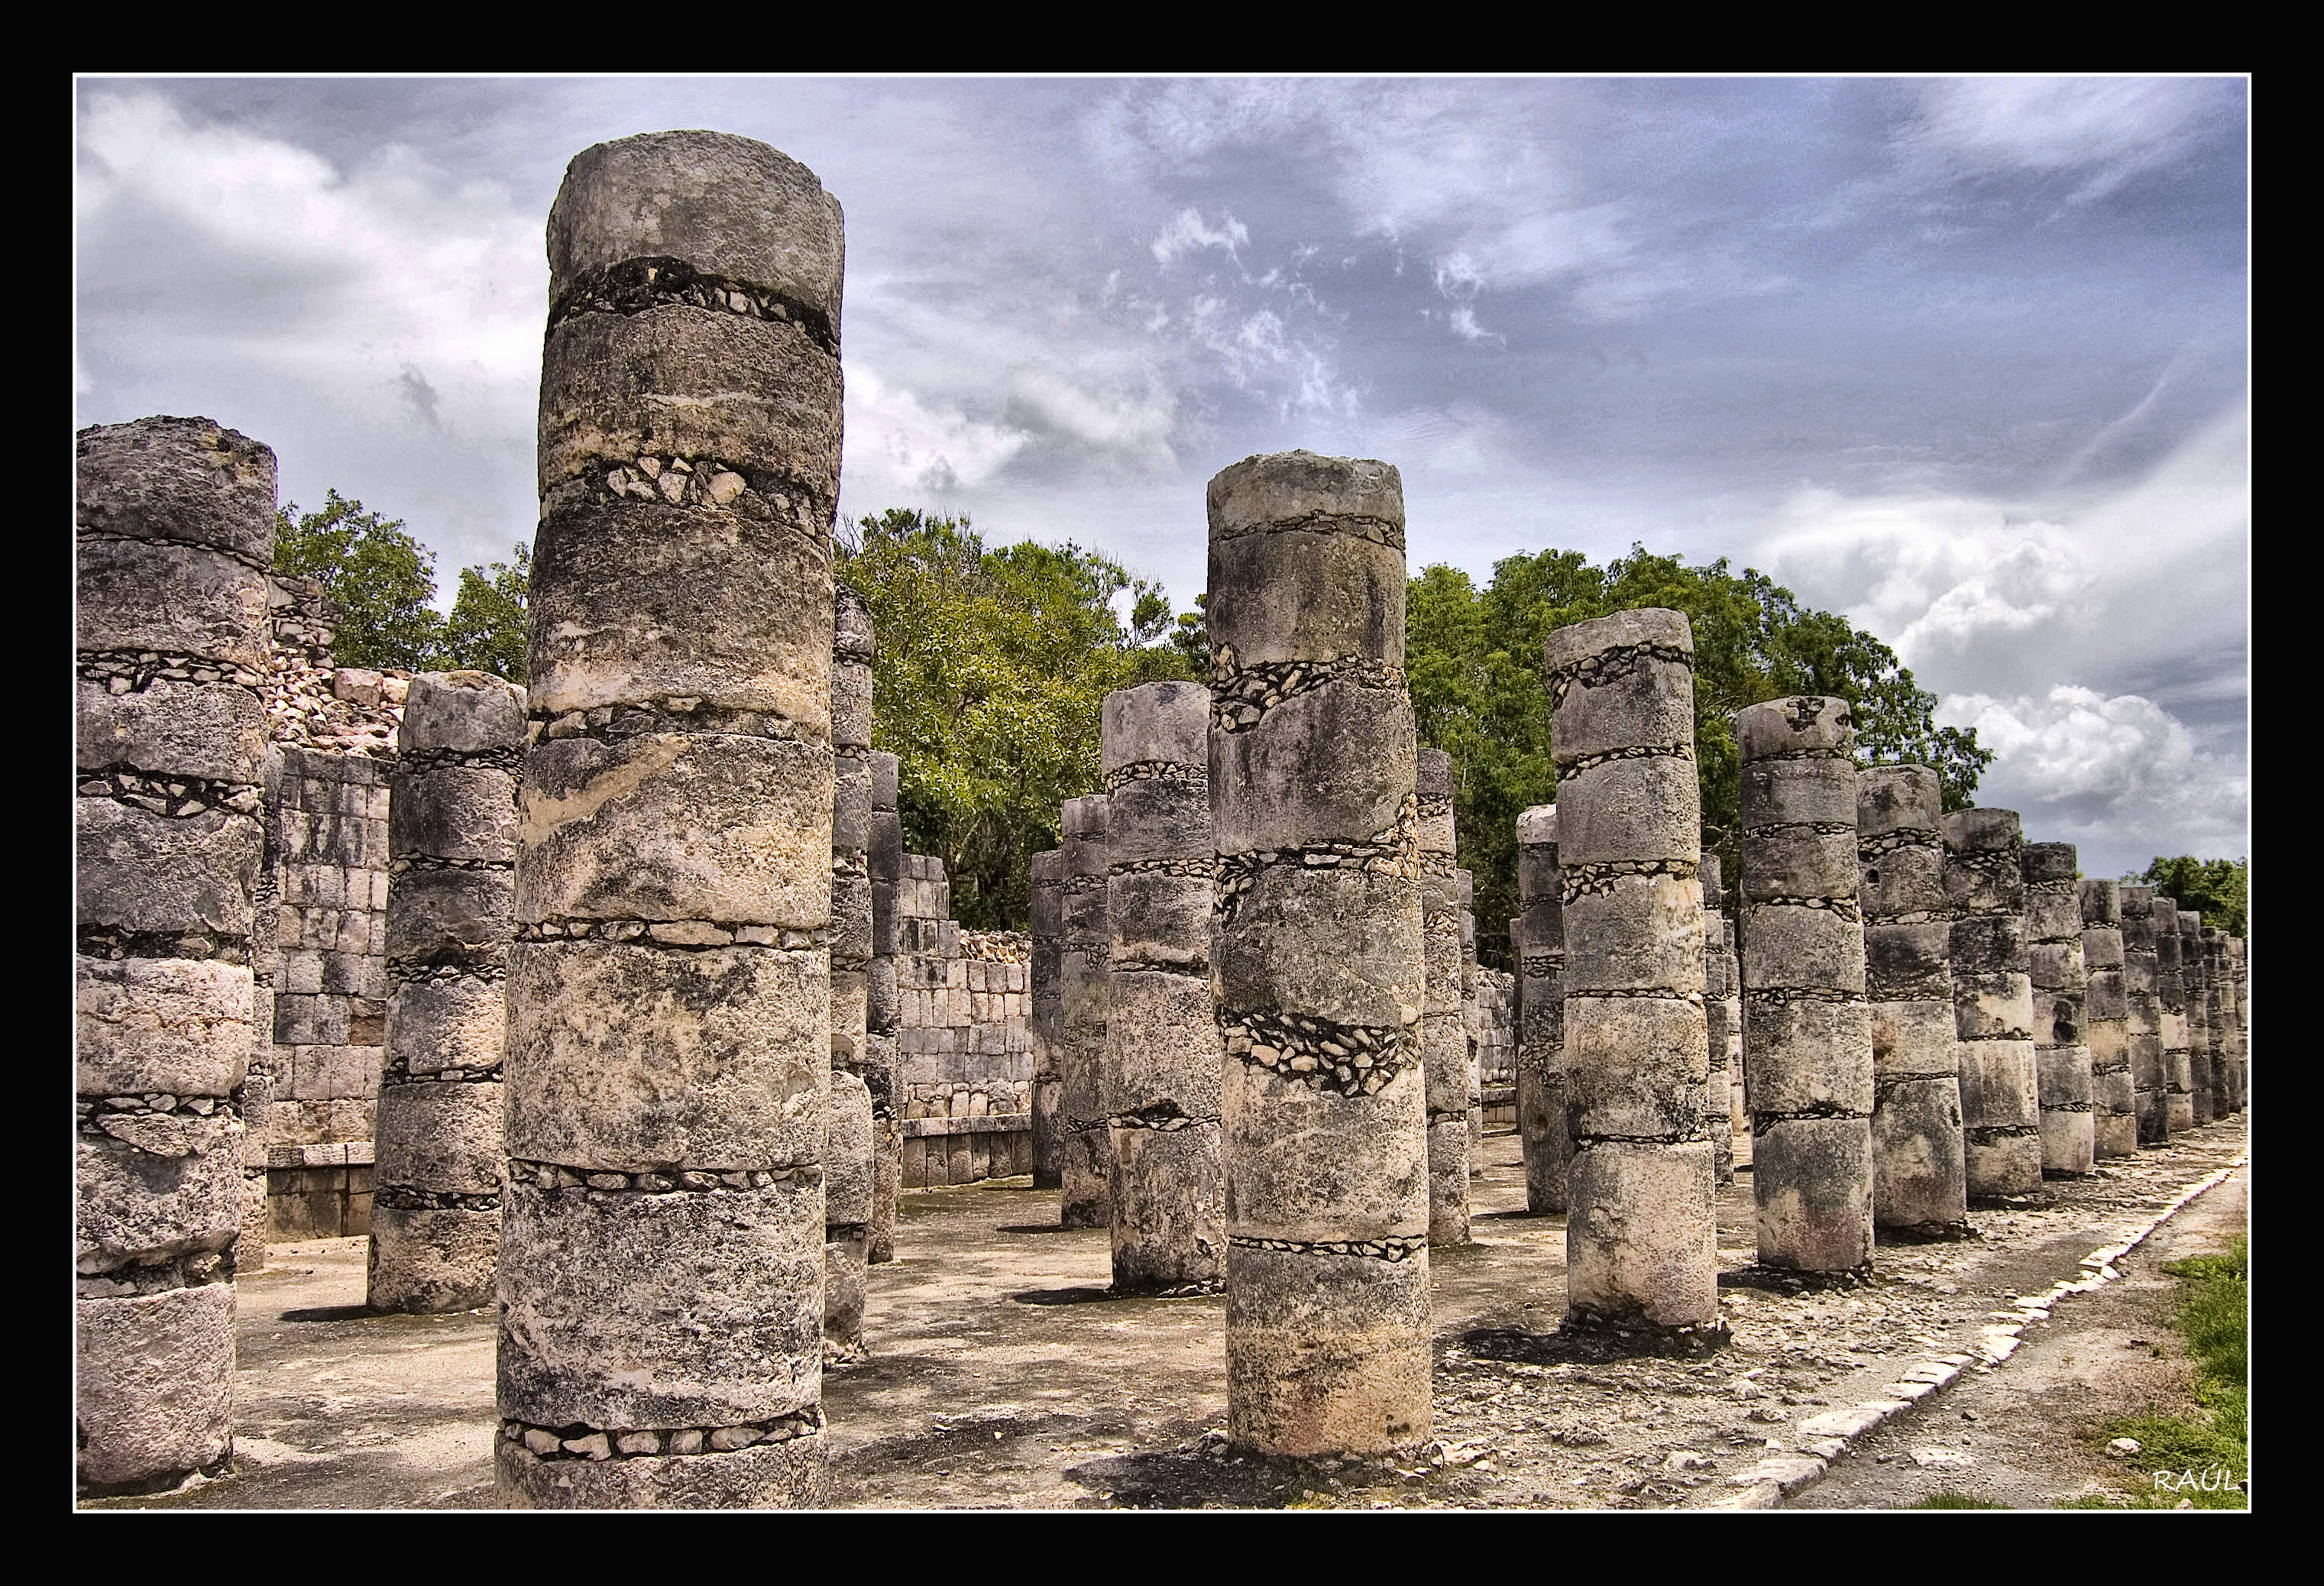 an overview of research on the temple of the warriors of chichen itza Wonderful mayan ruins mexico temple of the warriors mayan ruins at chichen itza site is a smaller version of chichen itza's temple of wide overview of the.